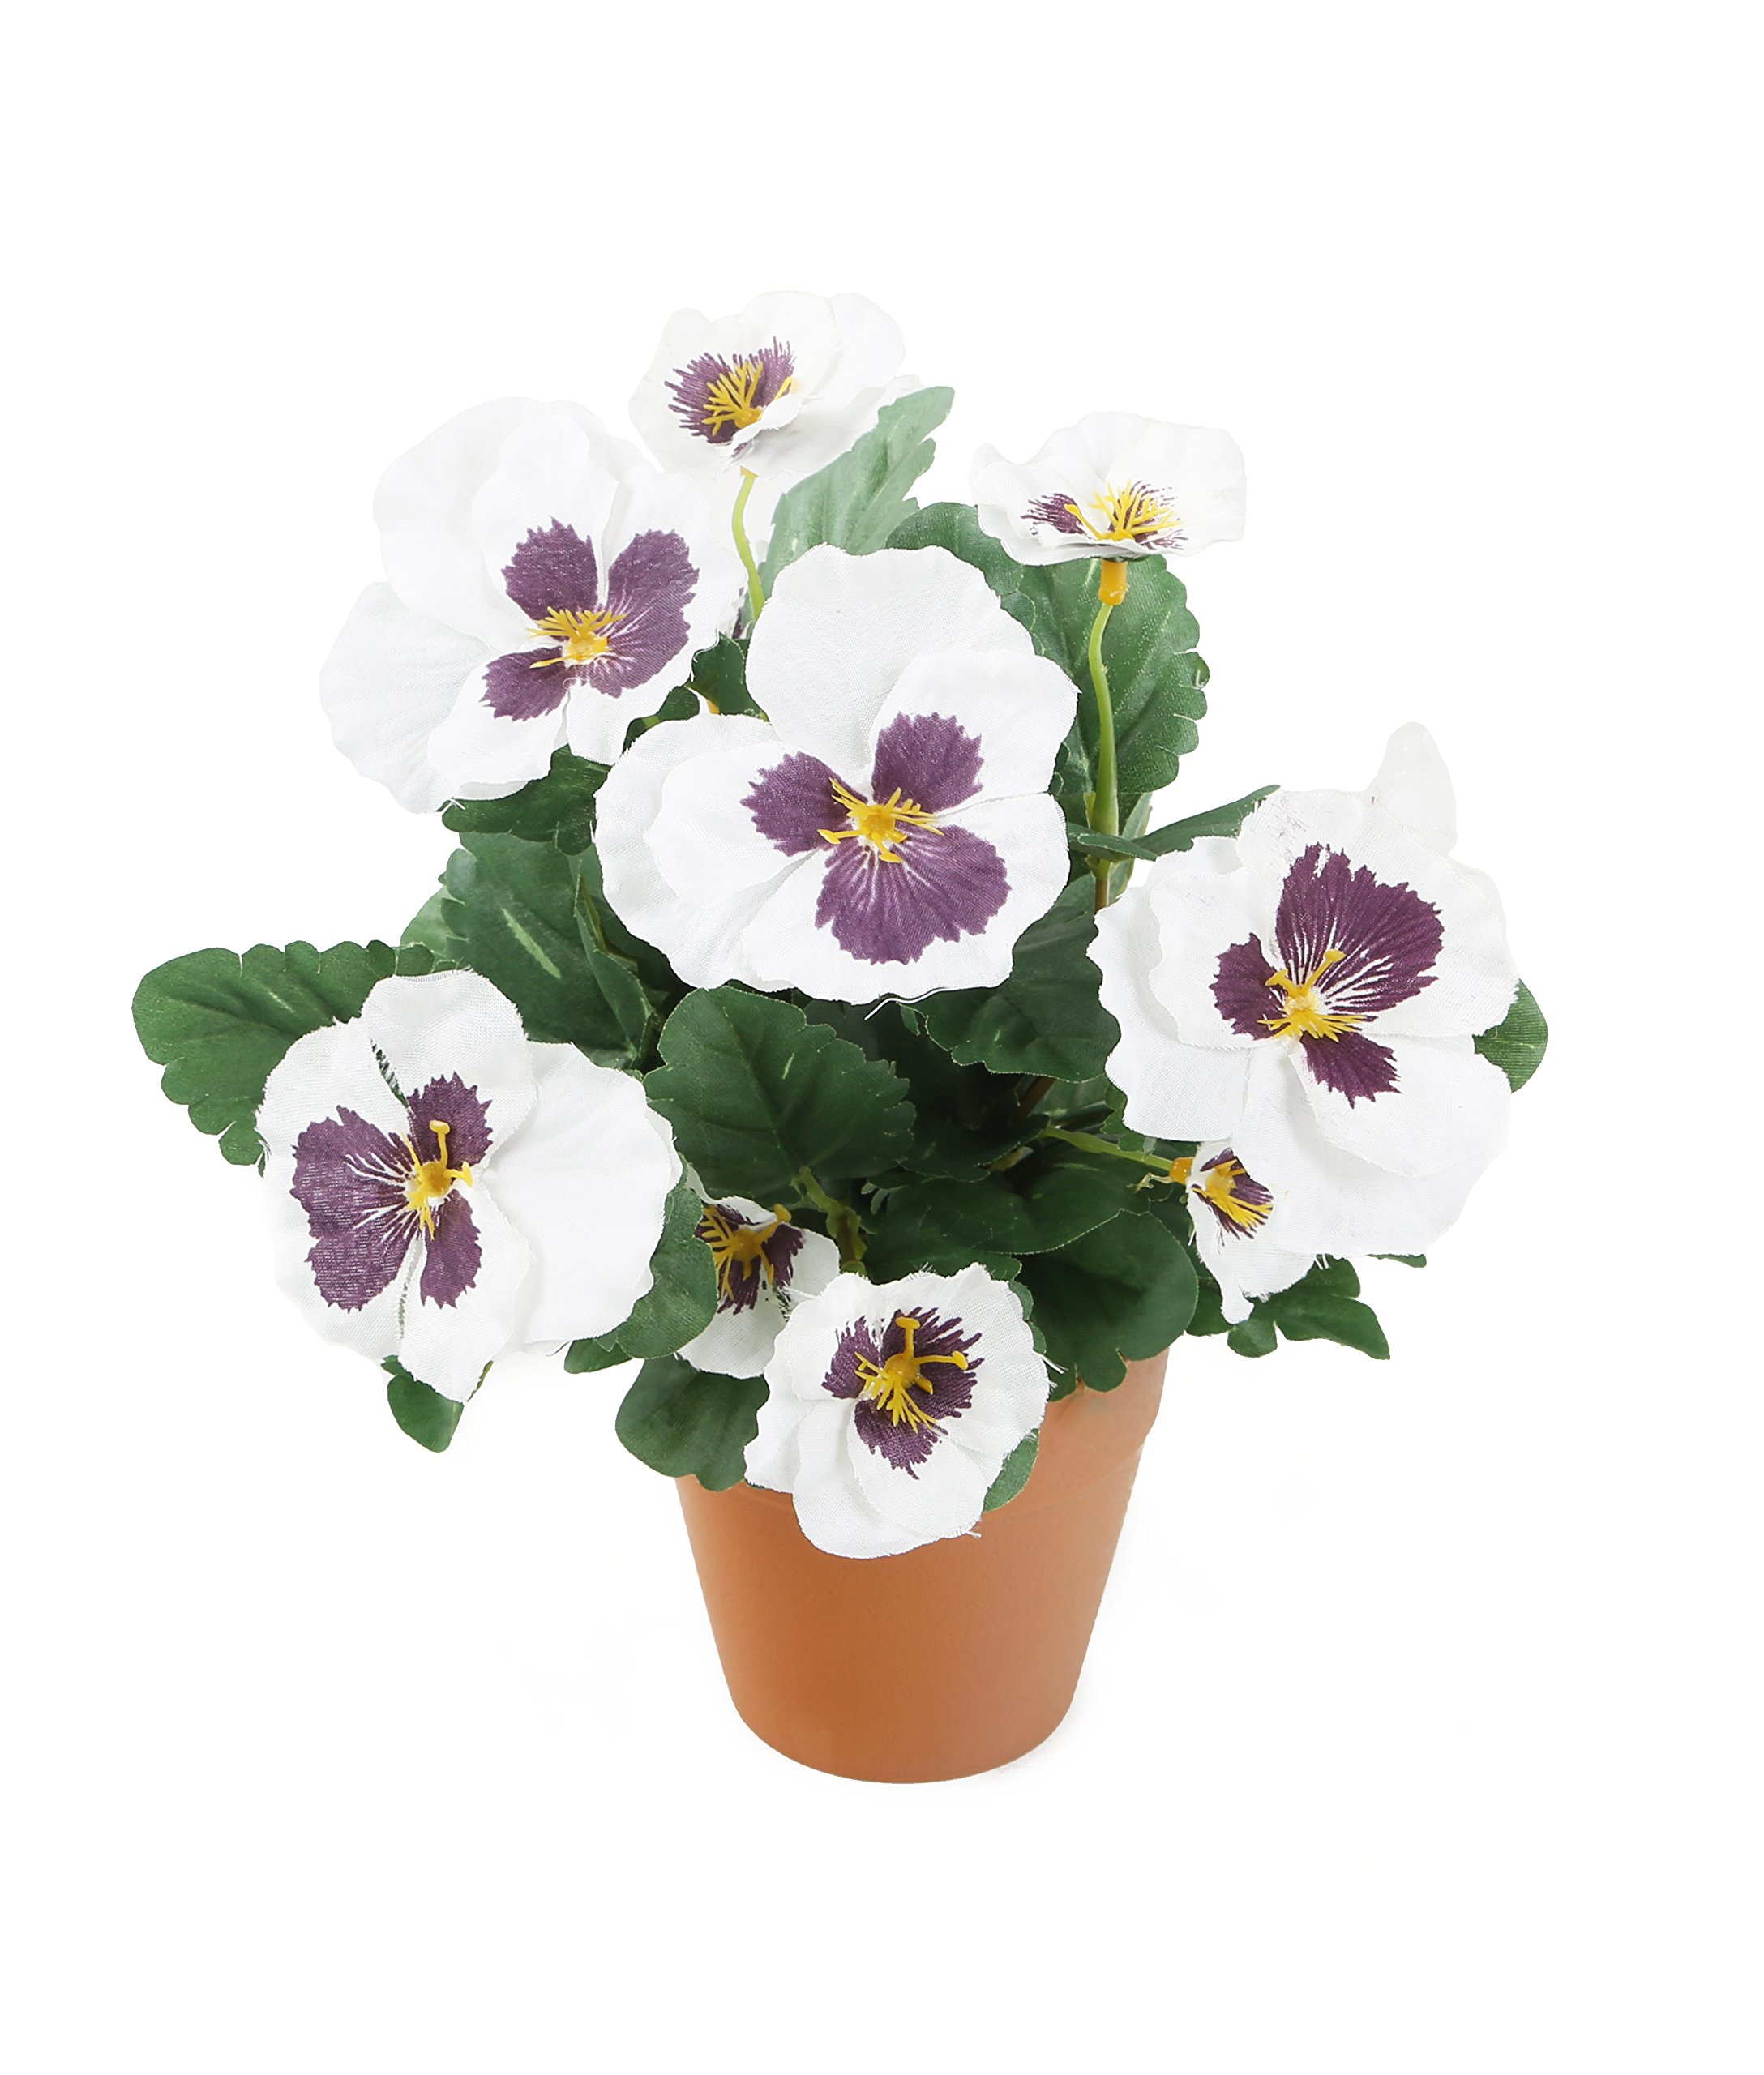 Artificial fake house plant green leaves white flowers pansy garden artificial fake house plant green leaves white flowers pansy garden 30cm pot na mightylinksfo